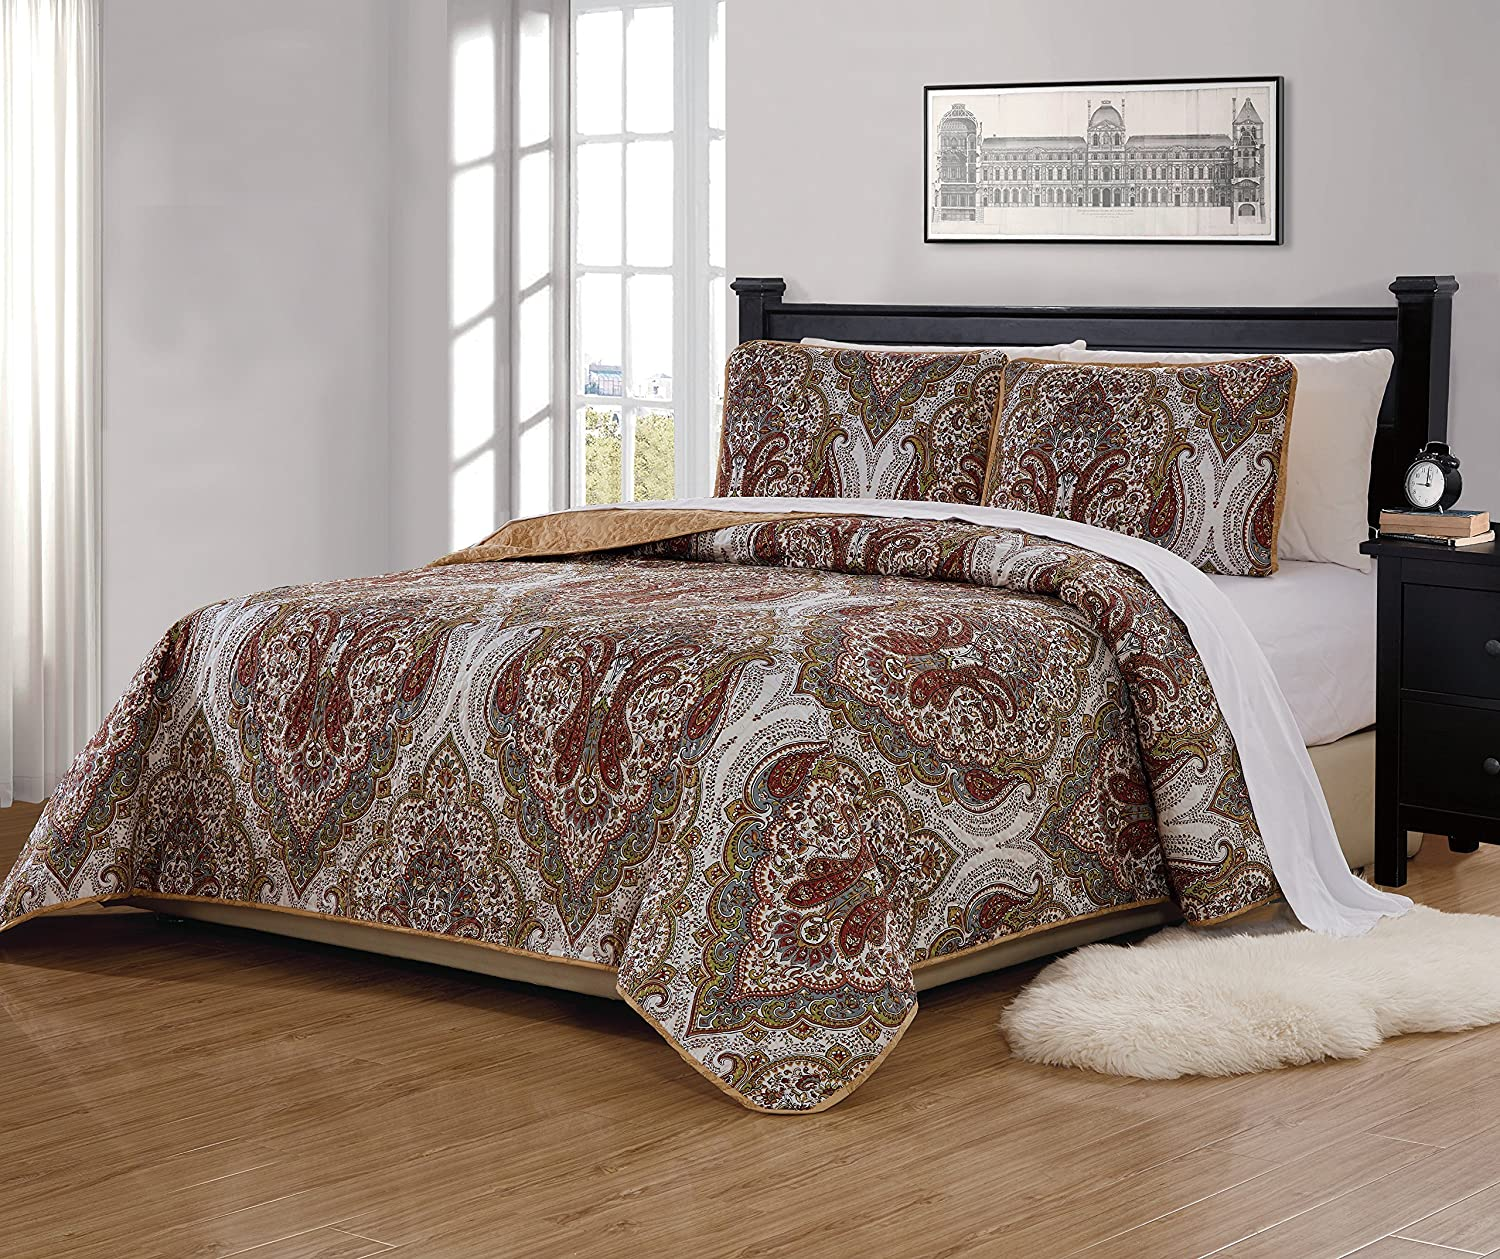 Mk Home 3pc Full/Queen Bedspread Quilted Print Floral White Brown Green Reversible Taupe Over Size New # Portia 66